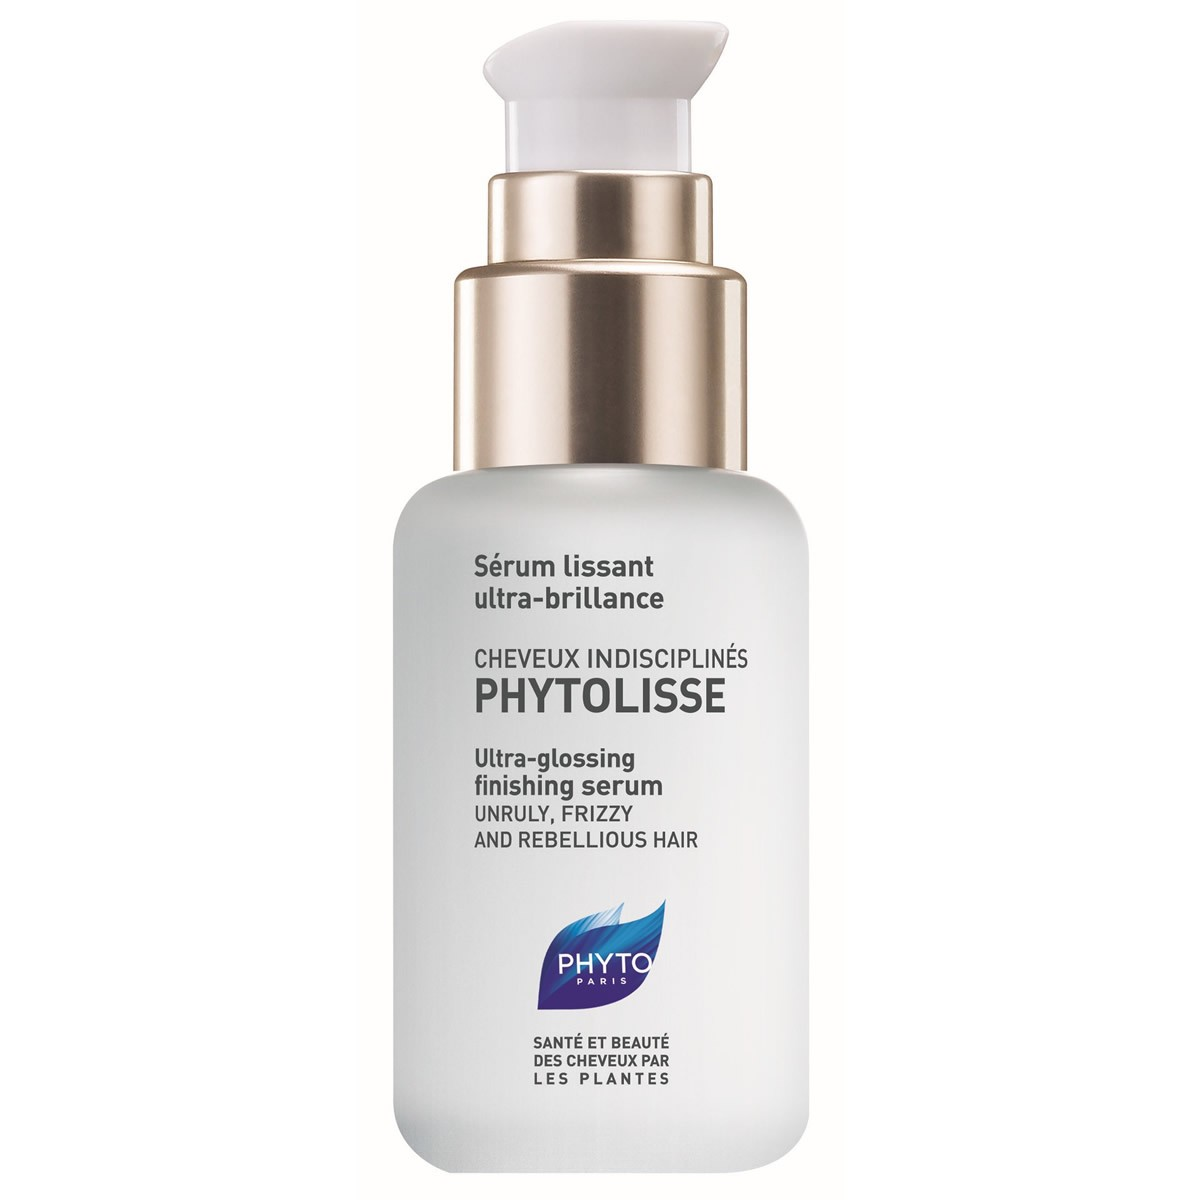 Phyto Phytolisse Ultra-Glossing Finishing Serum